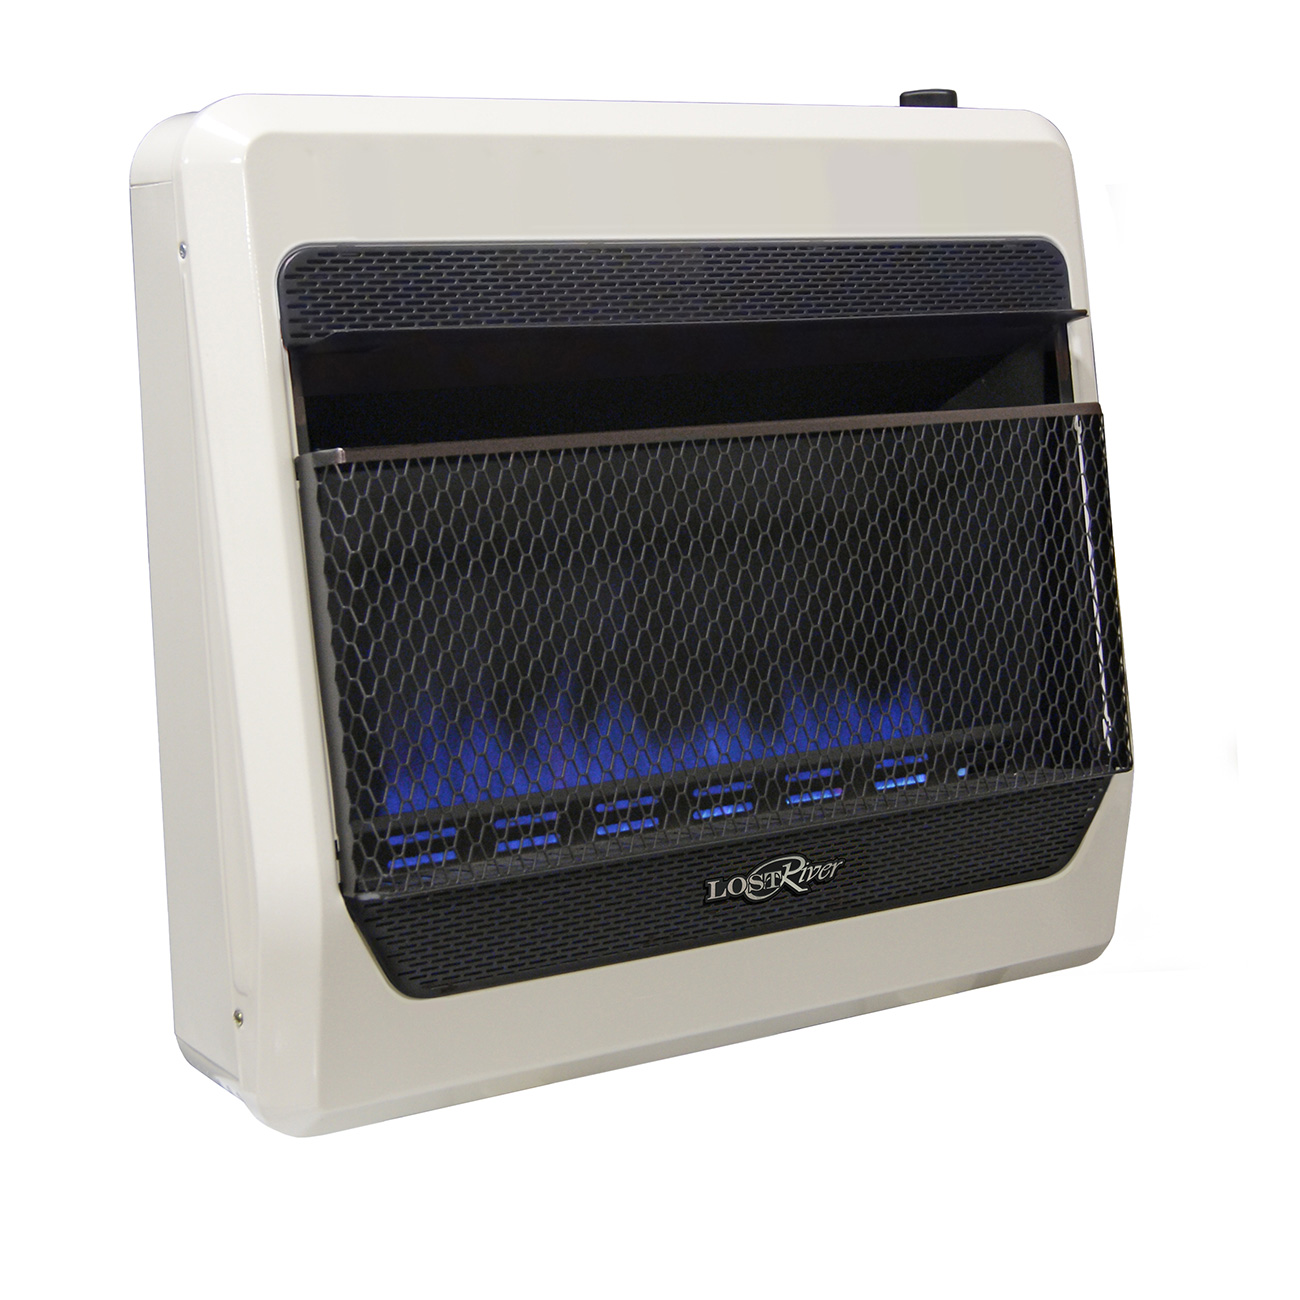 Lost River Dual Fuel Ventless Blue Flame Gas Space Heater